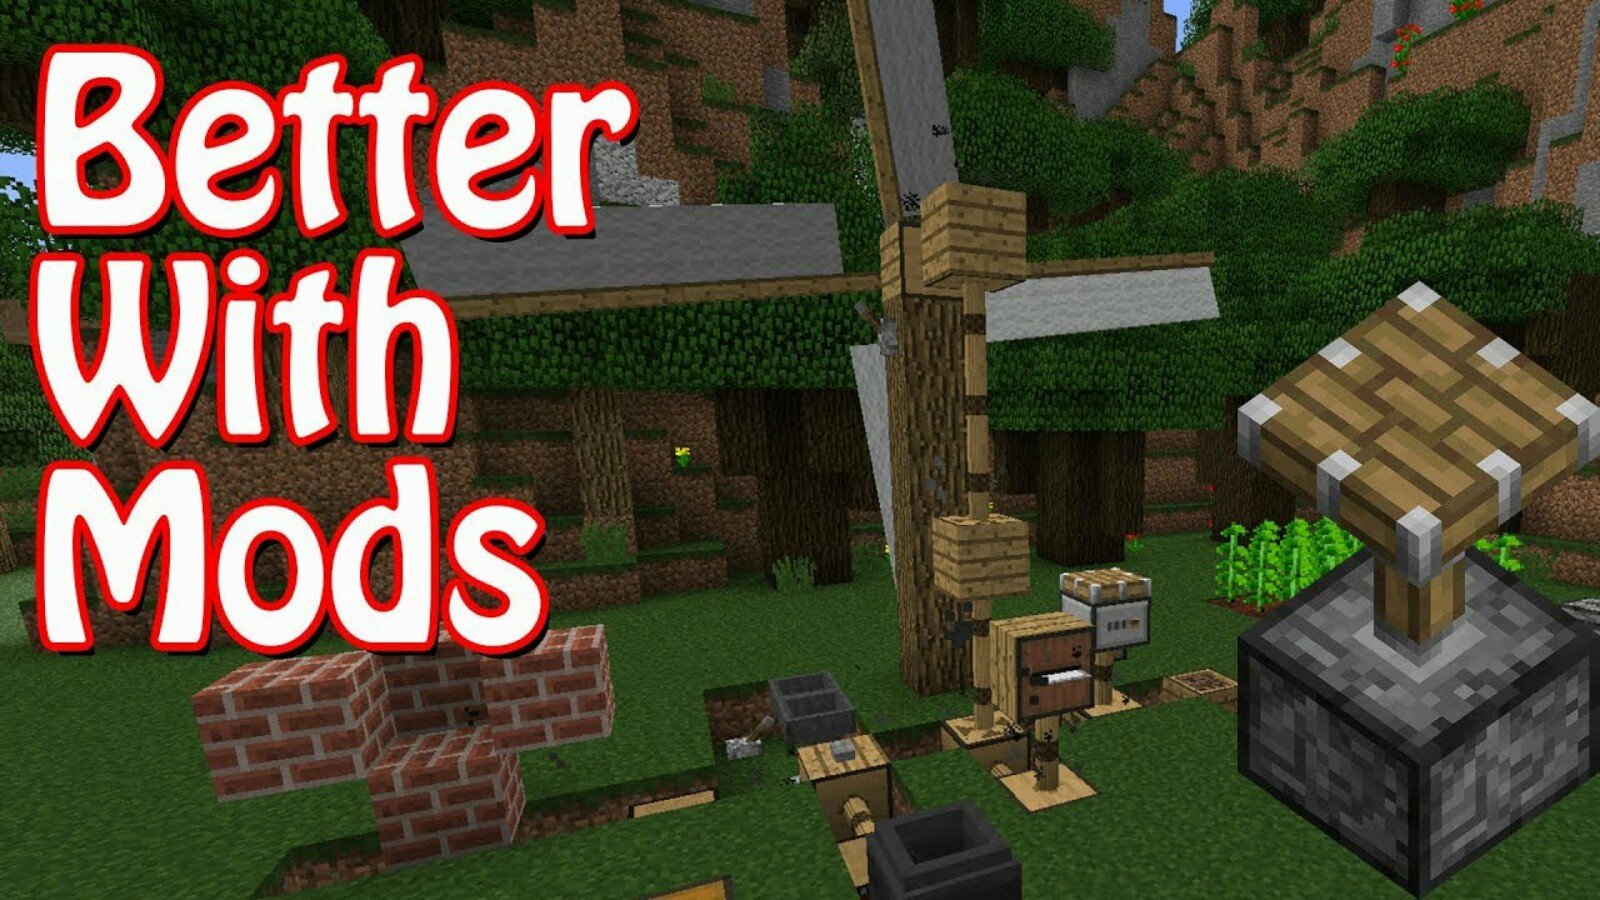 Minecraft 1 12 Get The Best Mods For Your Bedrock And Pocket Edition Minecraft Game For 2020 Click Here To Know More The Market Activity